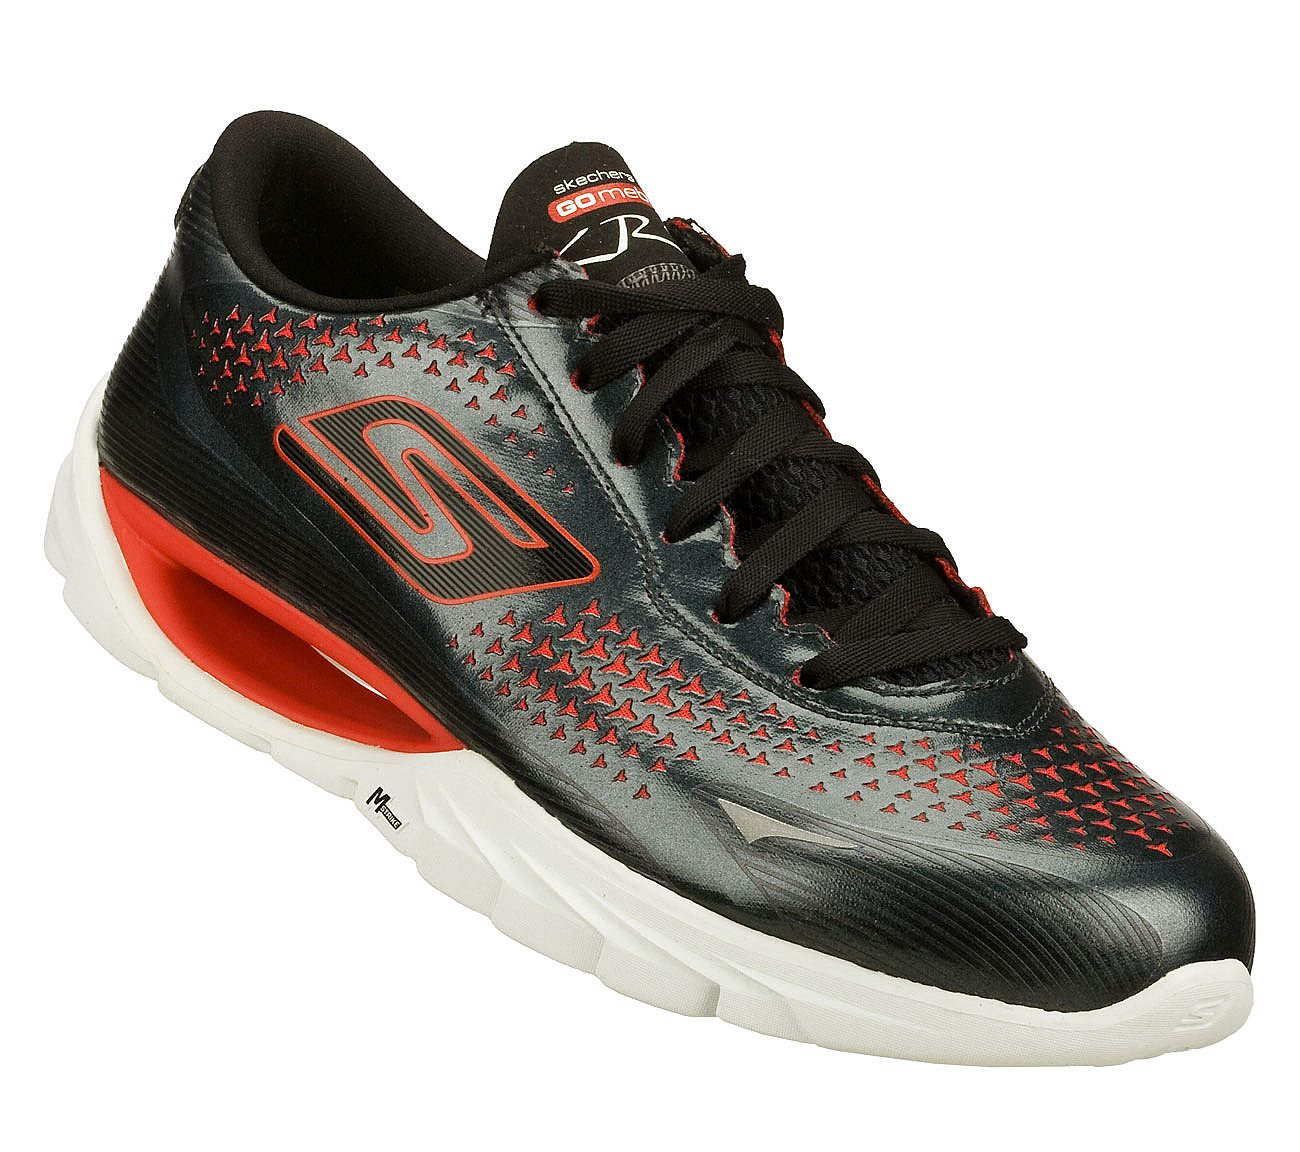 Skechers GOmeb KRS Running Shoes